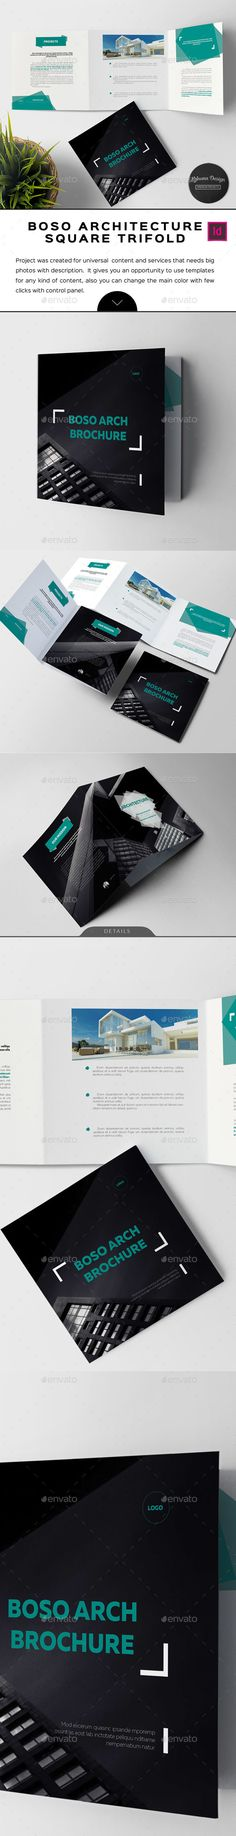 Boso Architecture Trifold Brochure  Architecture Minimal And